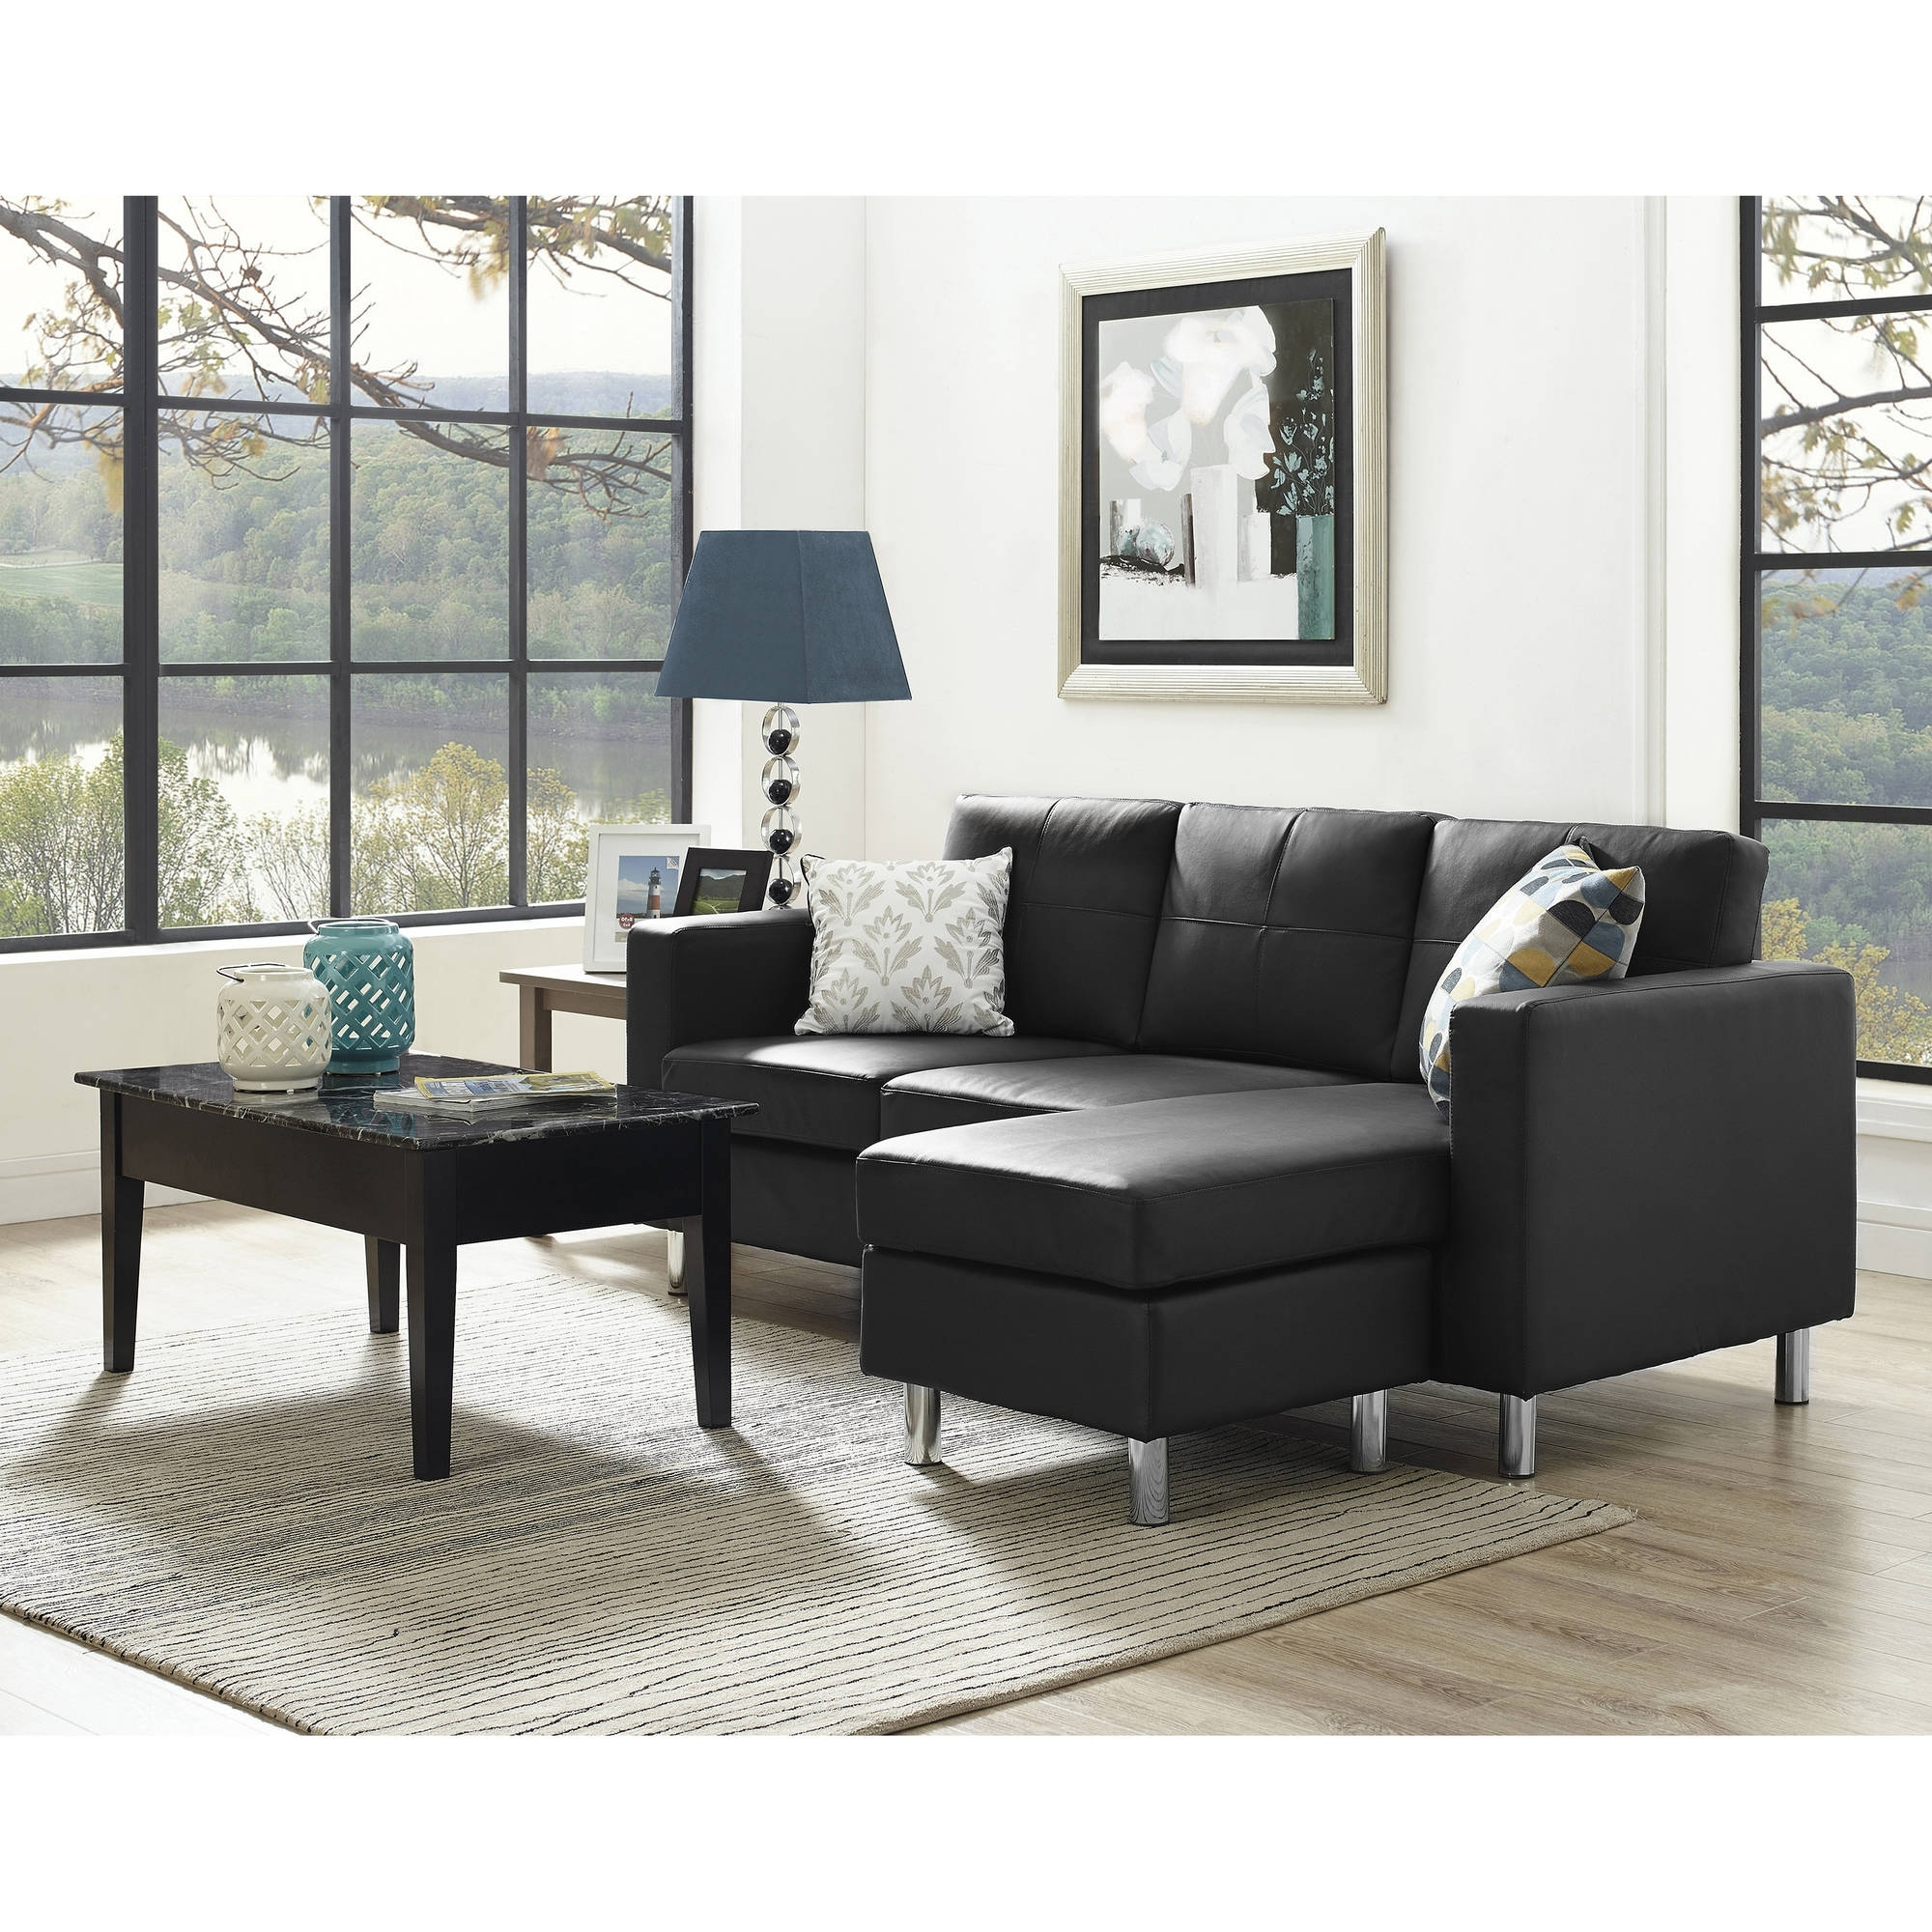 Favorite Choice Throughout Small Sectional Sofas (View 11 of 15)